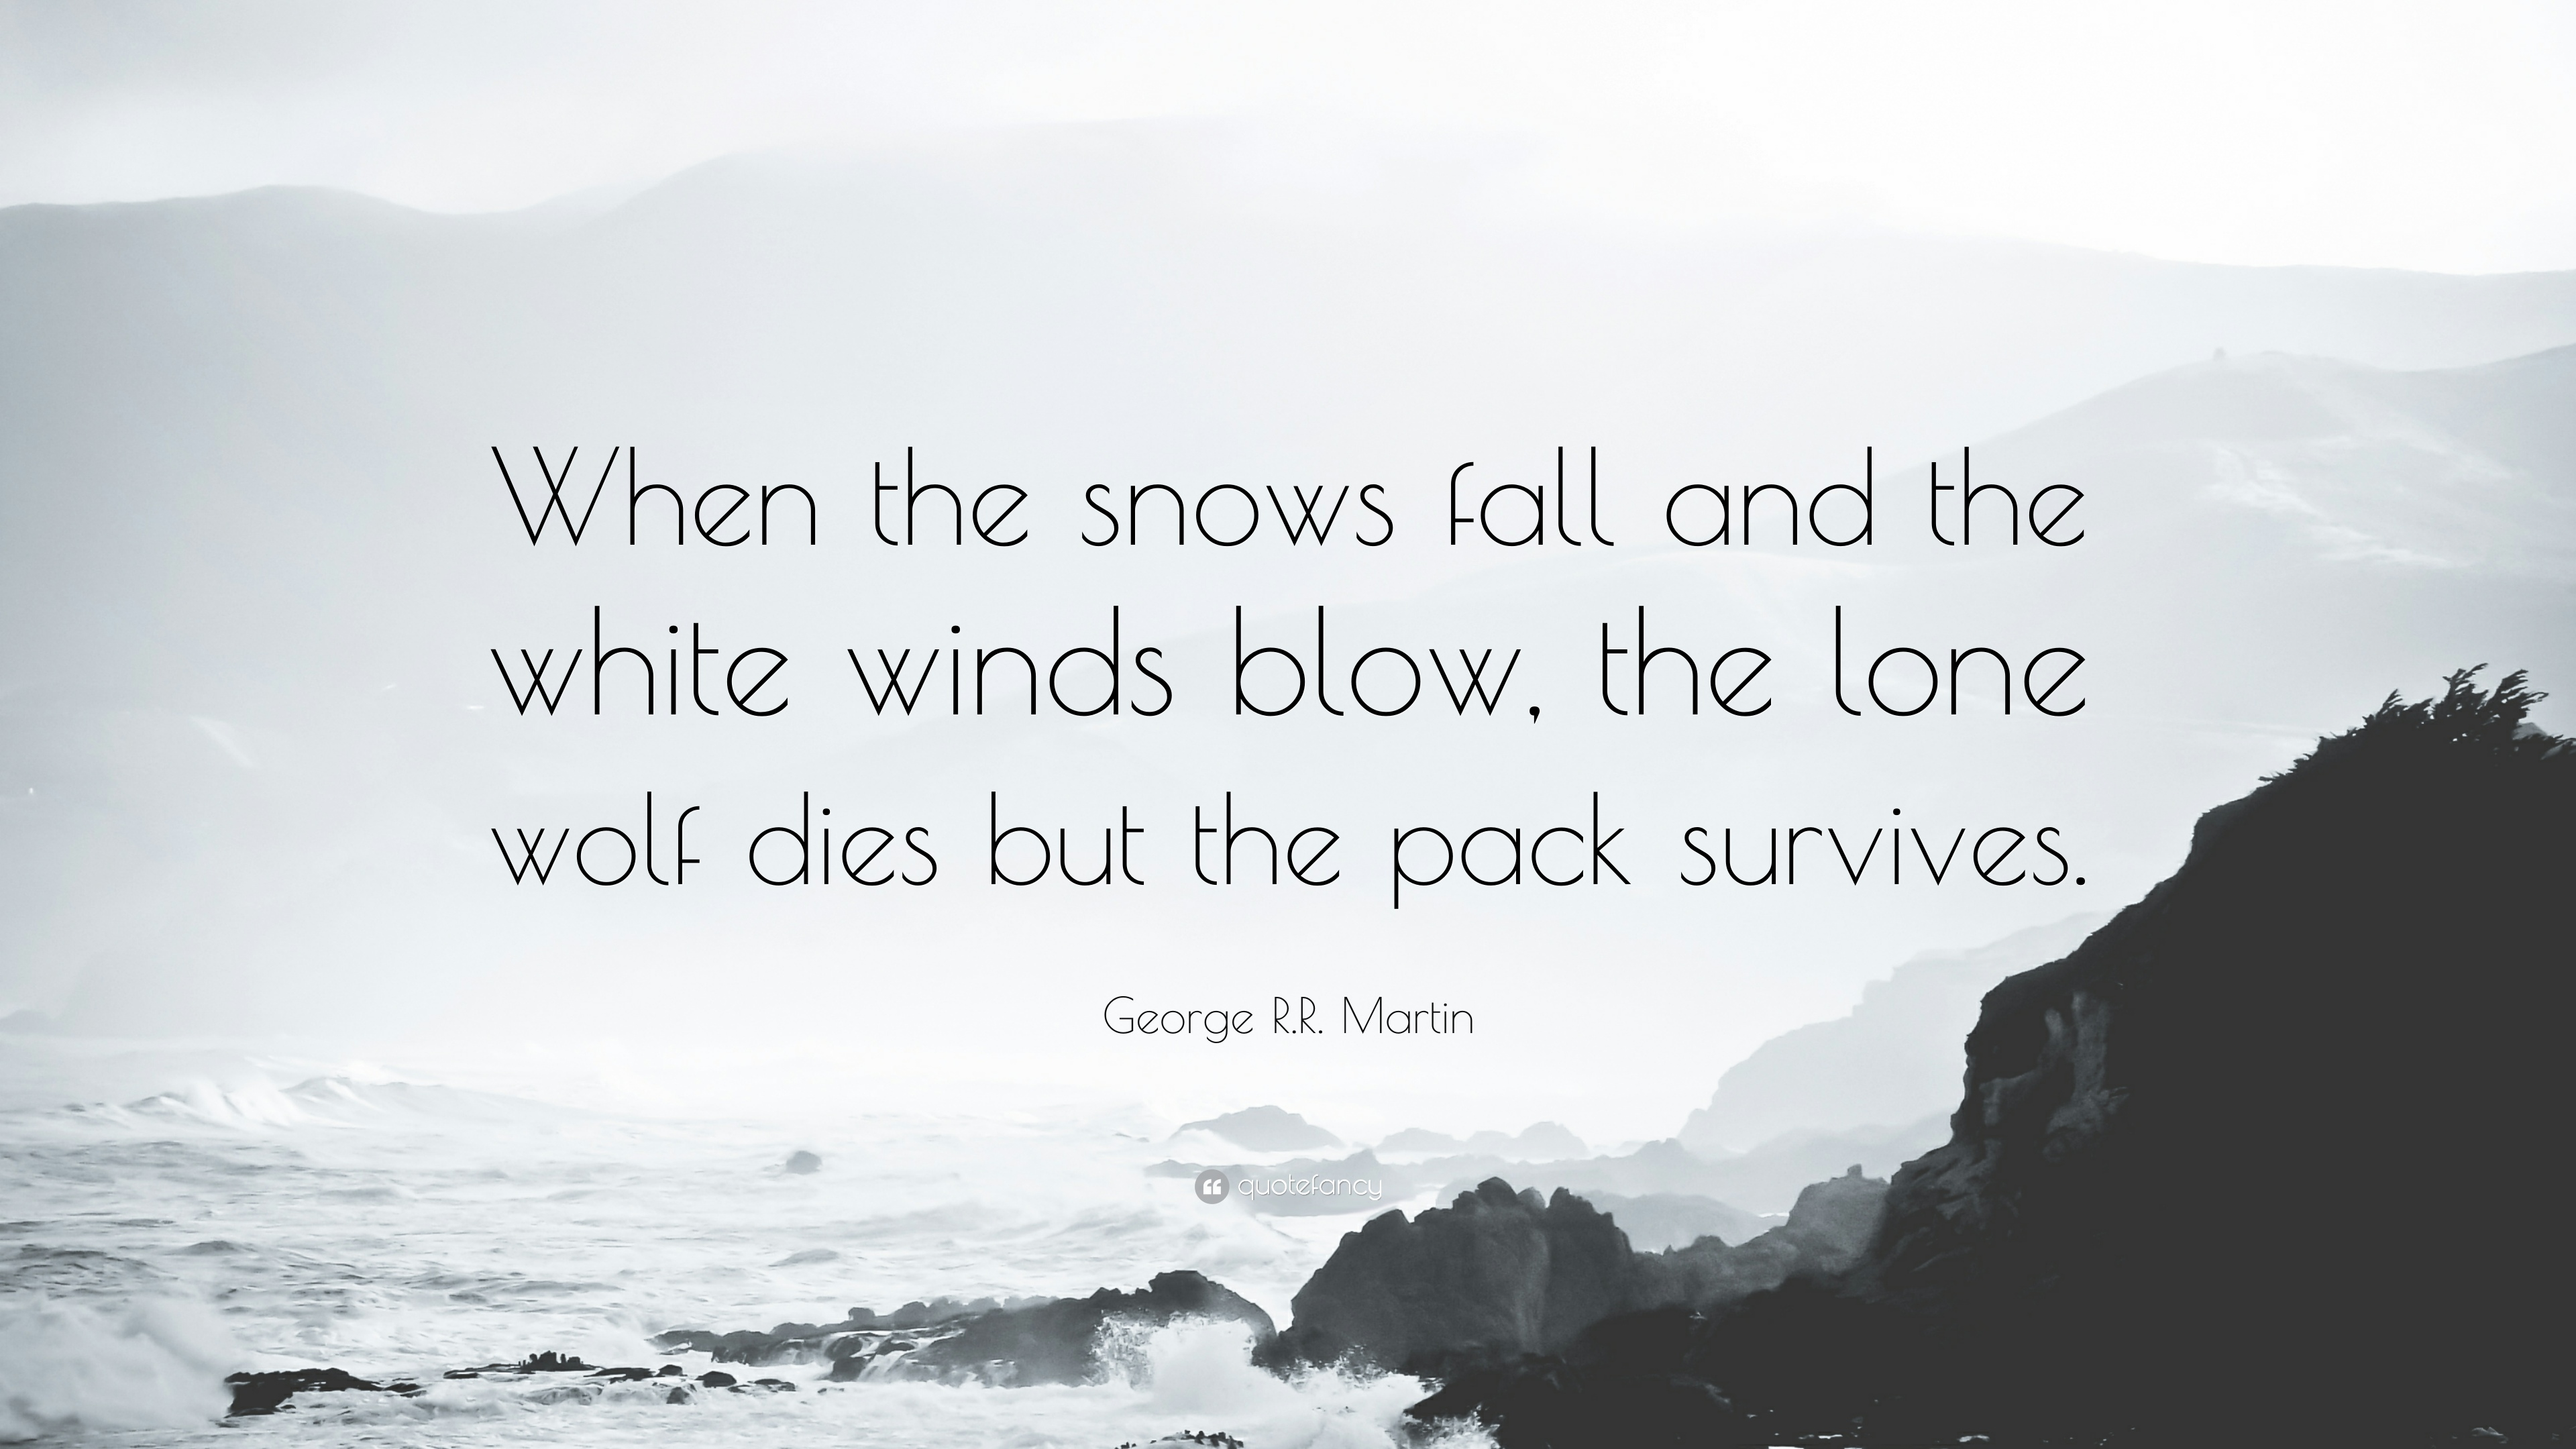 Game Of Thrones Quote 4k Ultra HD Wallpaper And Background Image